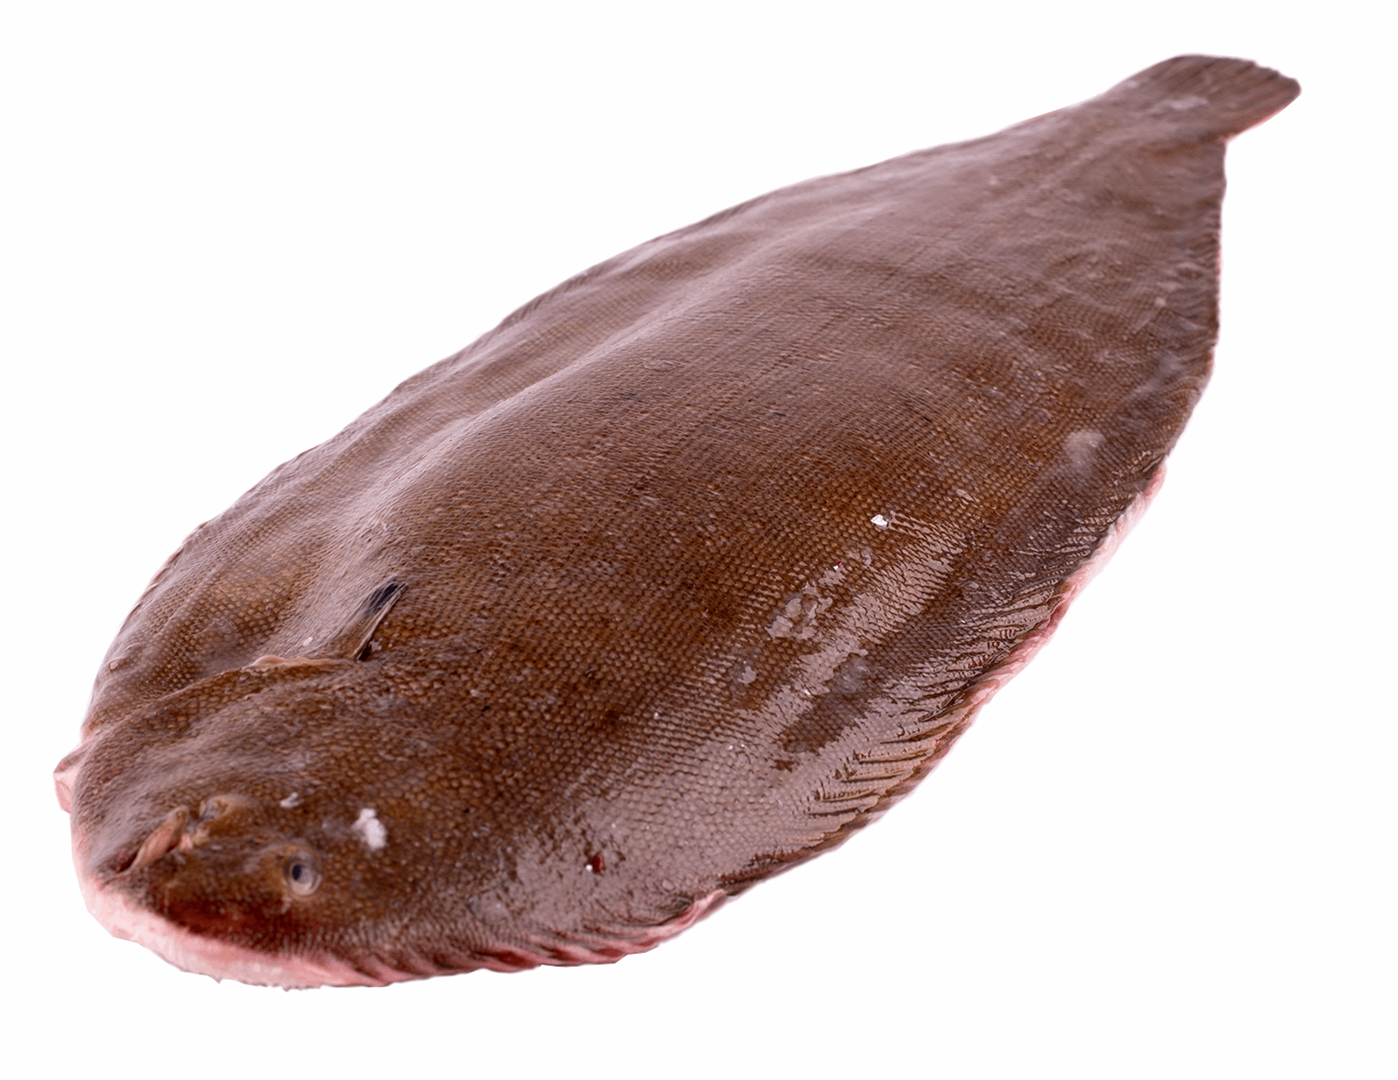 Productafbeelding DOVER SOLE 800 GRAM UP WHOLE, FROZEN